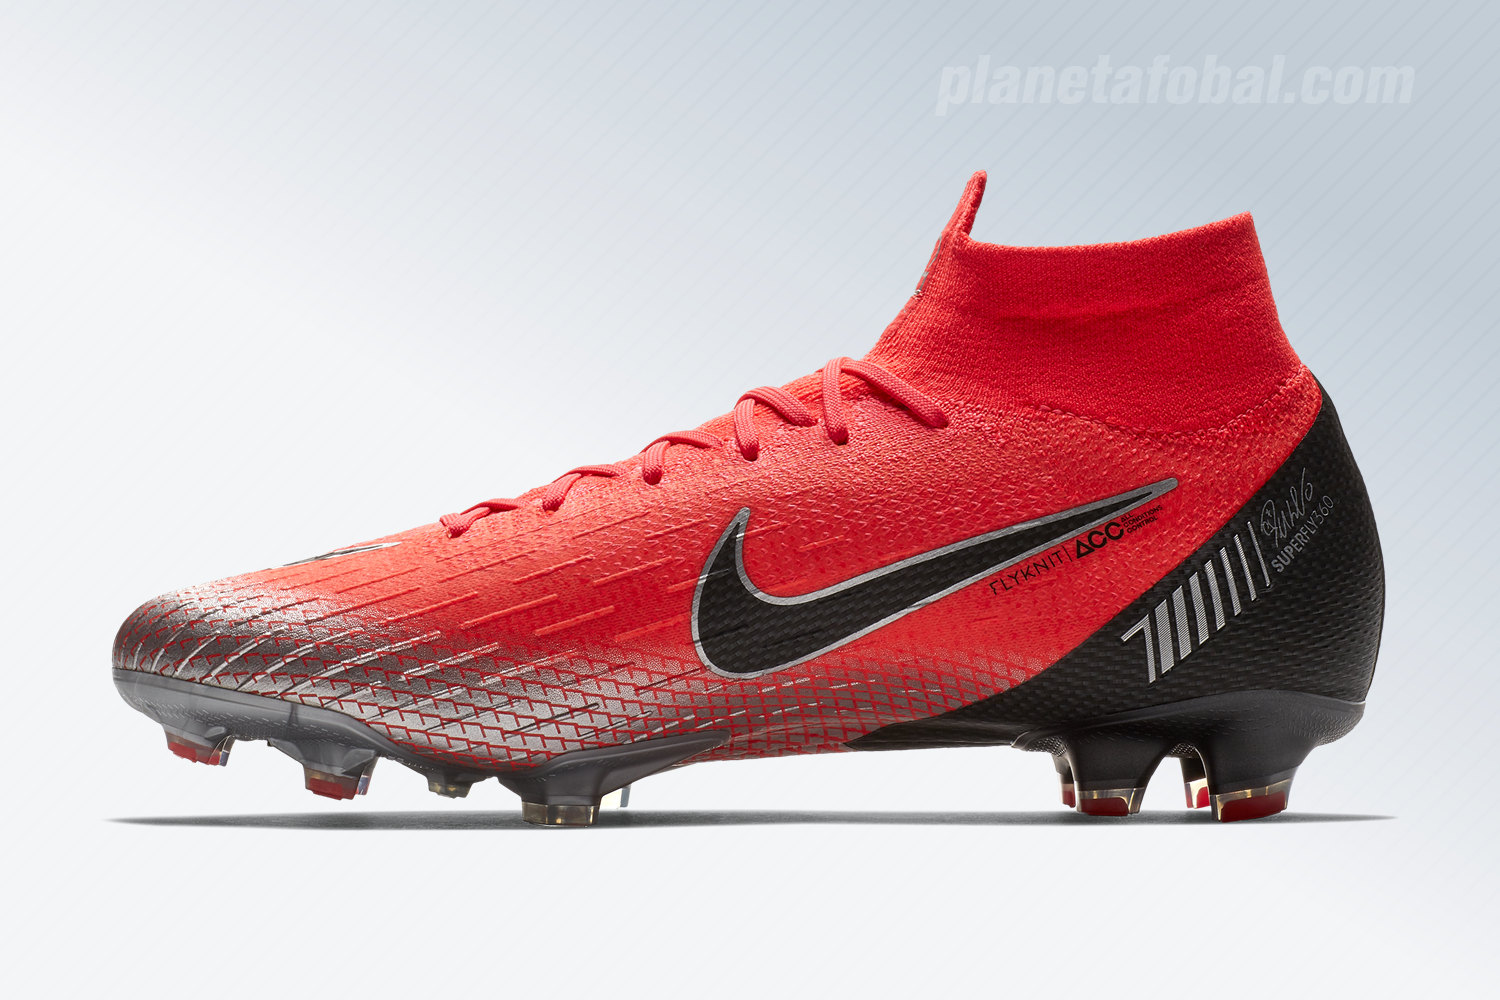 acec9b51cd794 Nuevos botines Mercurial Superfly «CR7 Chapter 7»